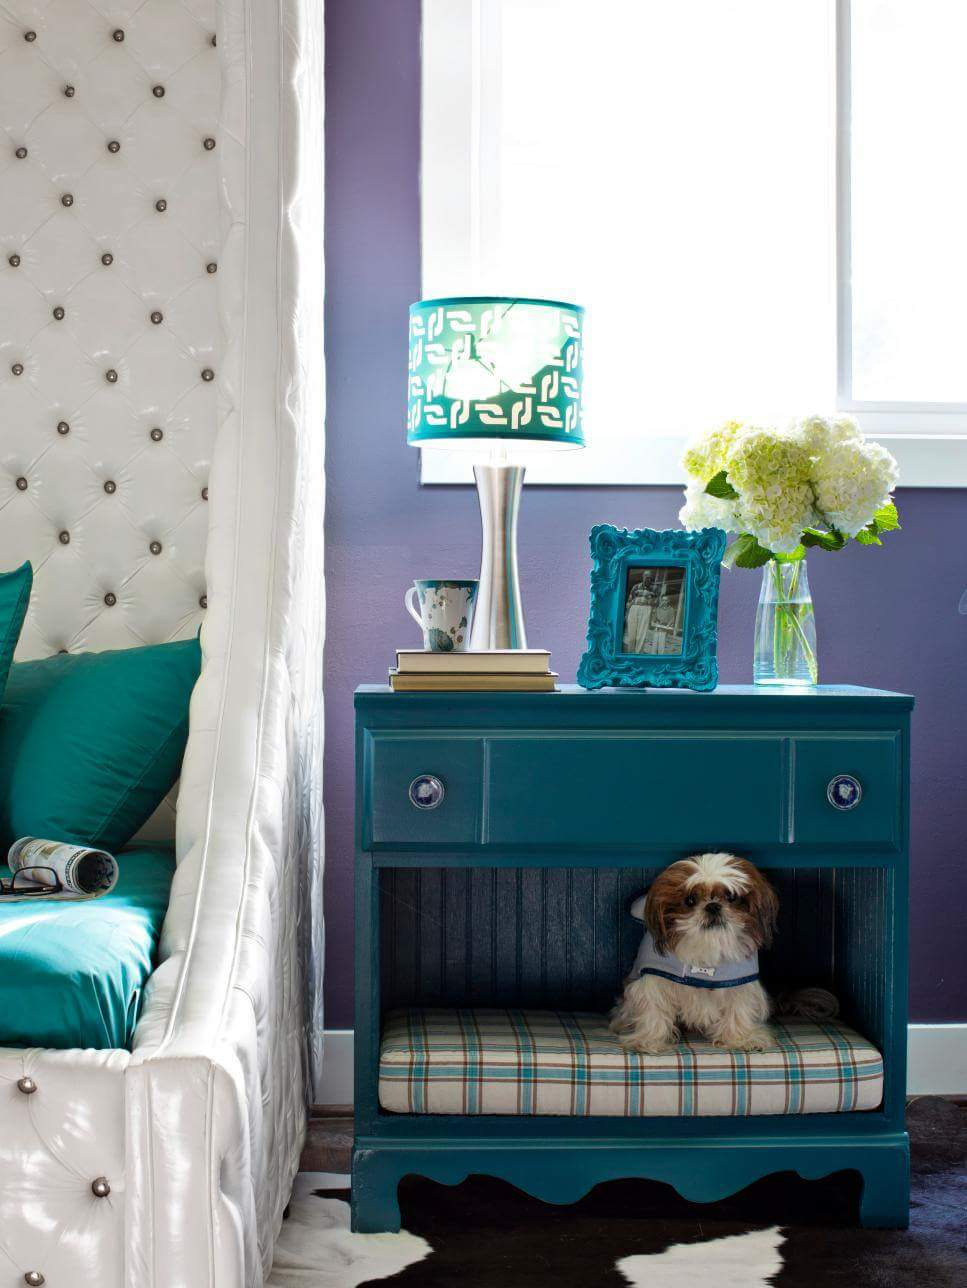 Old-corner-table-2 +80 Adorable Dog Bed Designs That Will Surprise You